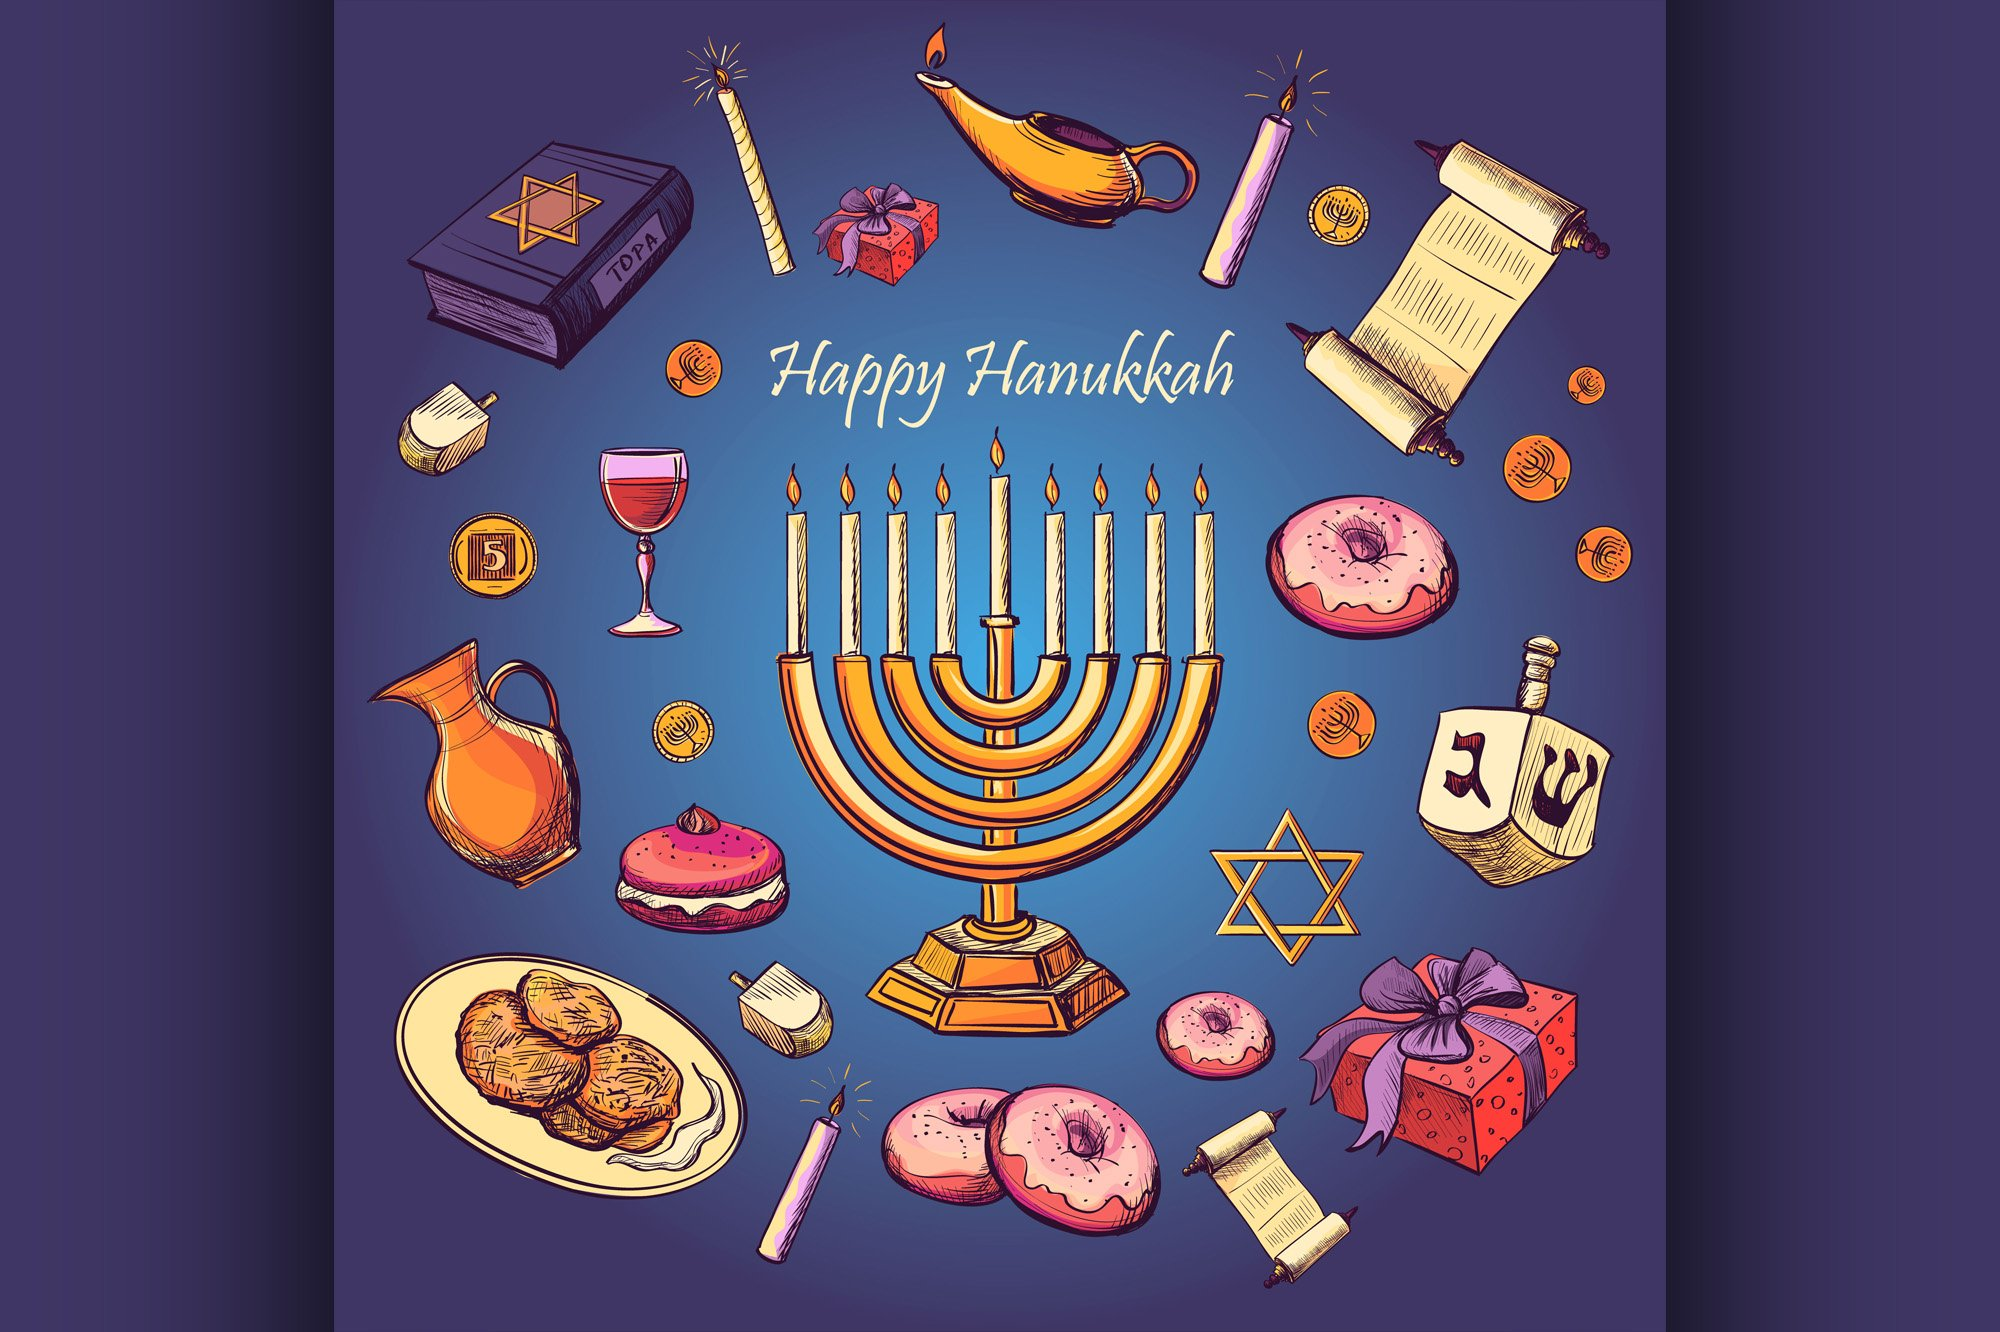 Happy Hanukkah holiday greeting background example image 1